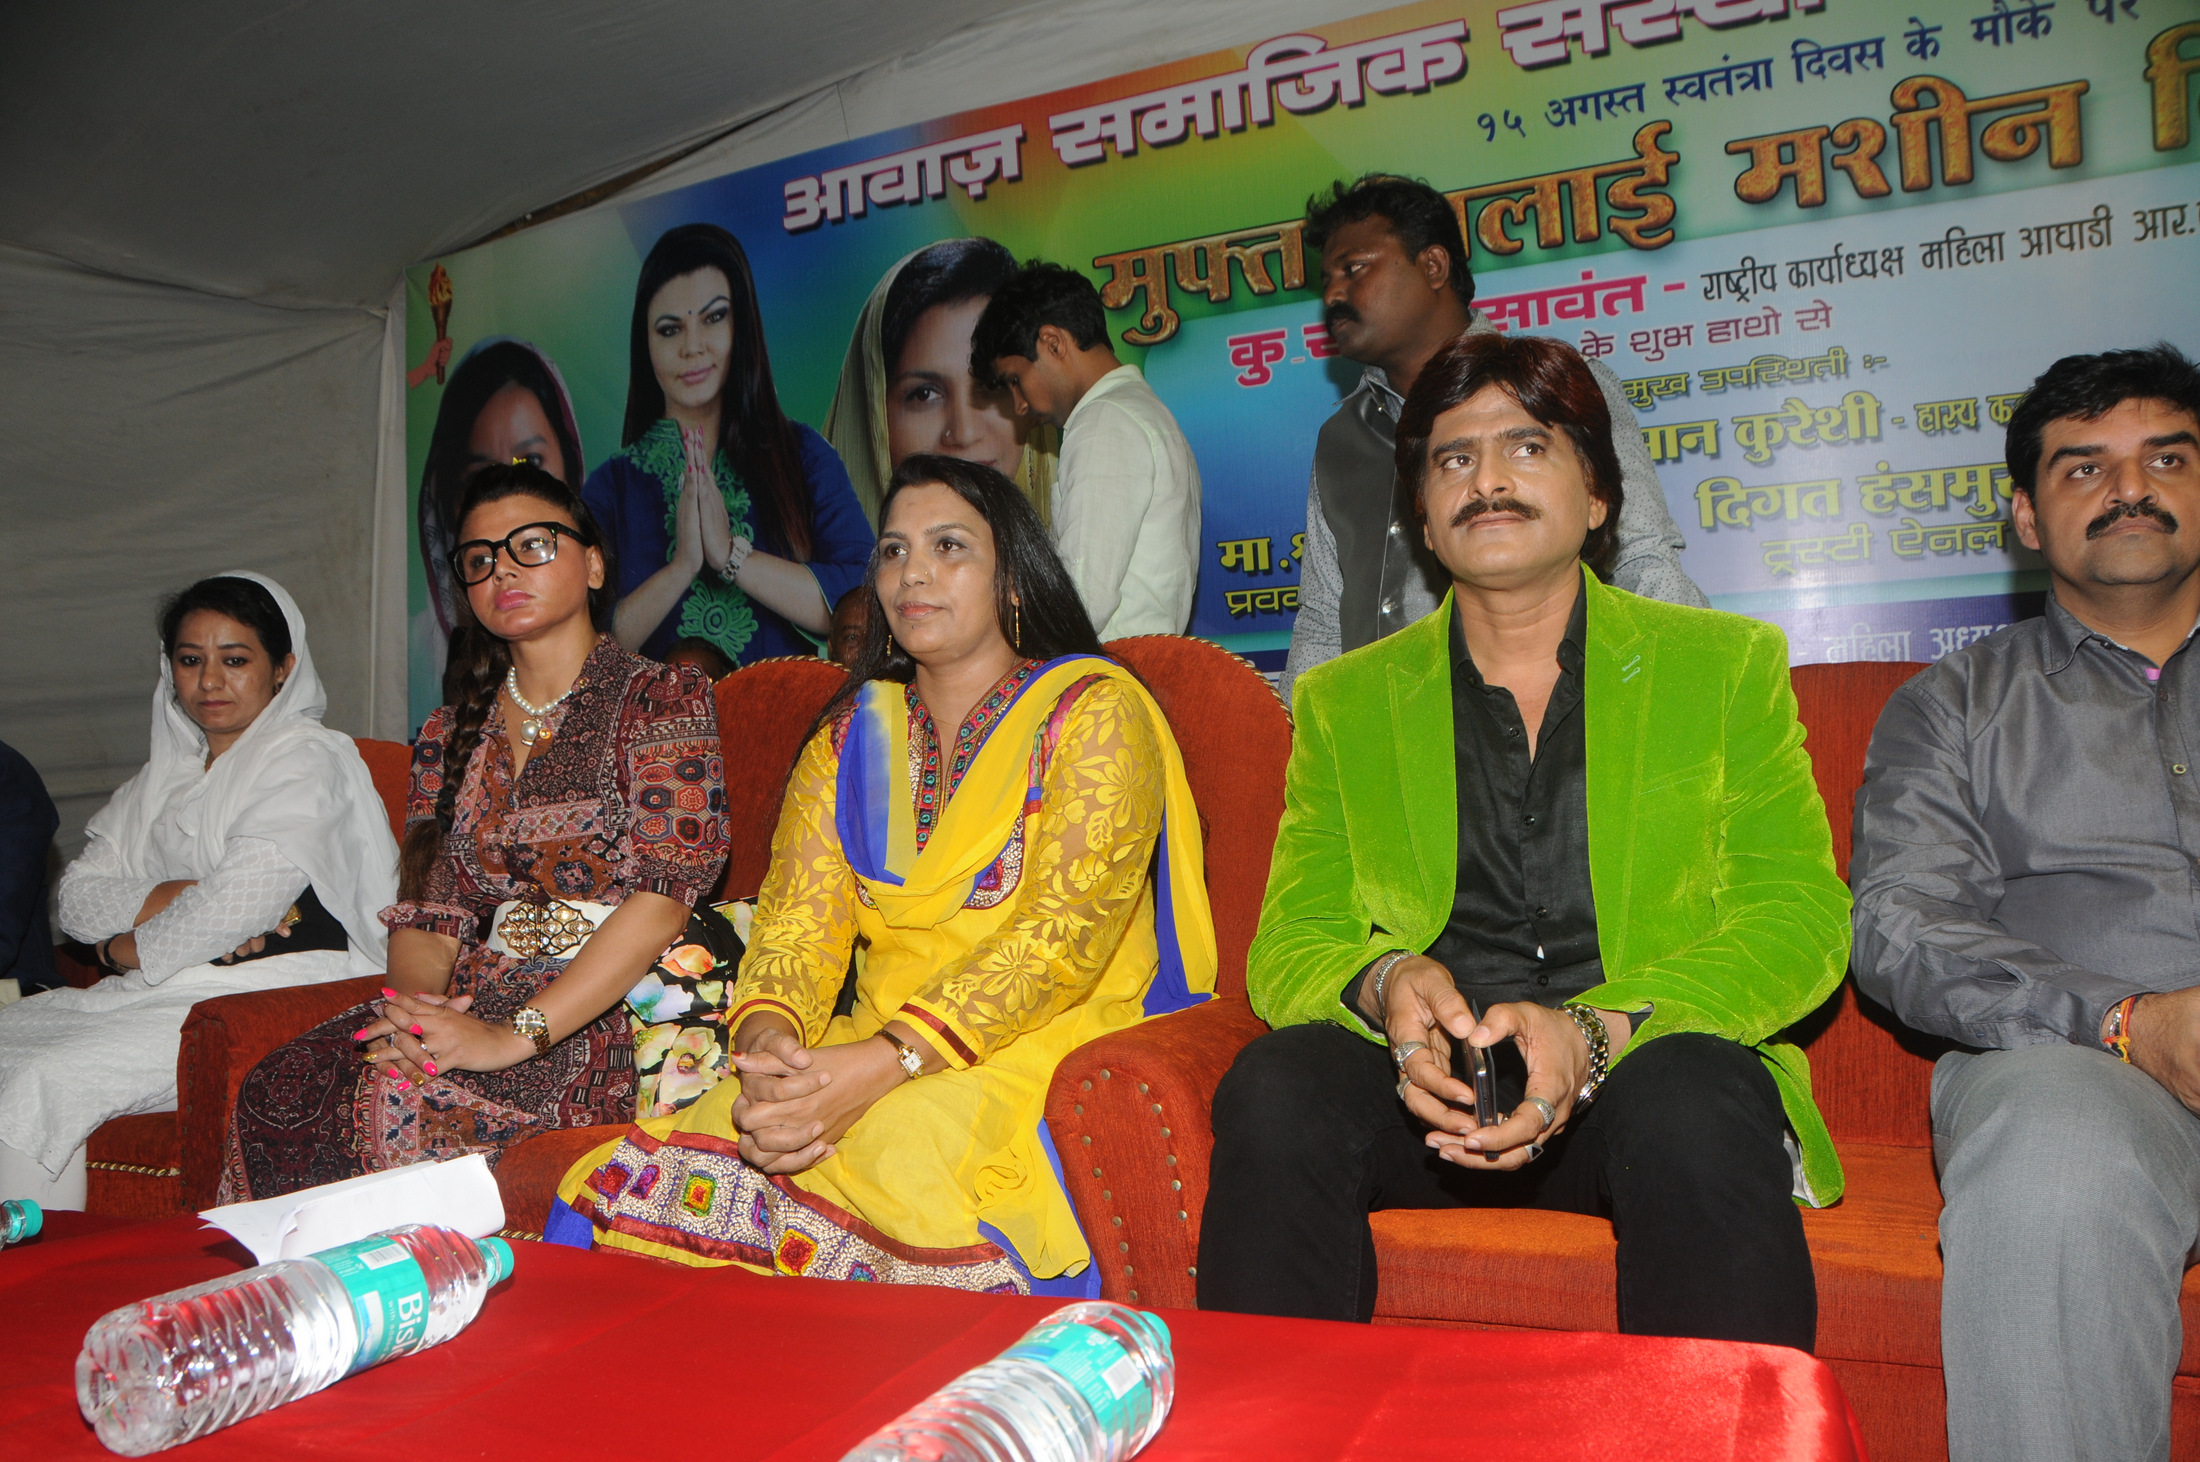 RAKHIi SAWANT Support WOMEN EMPOWERMENT EVENT